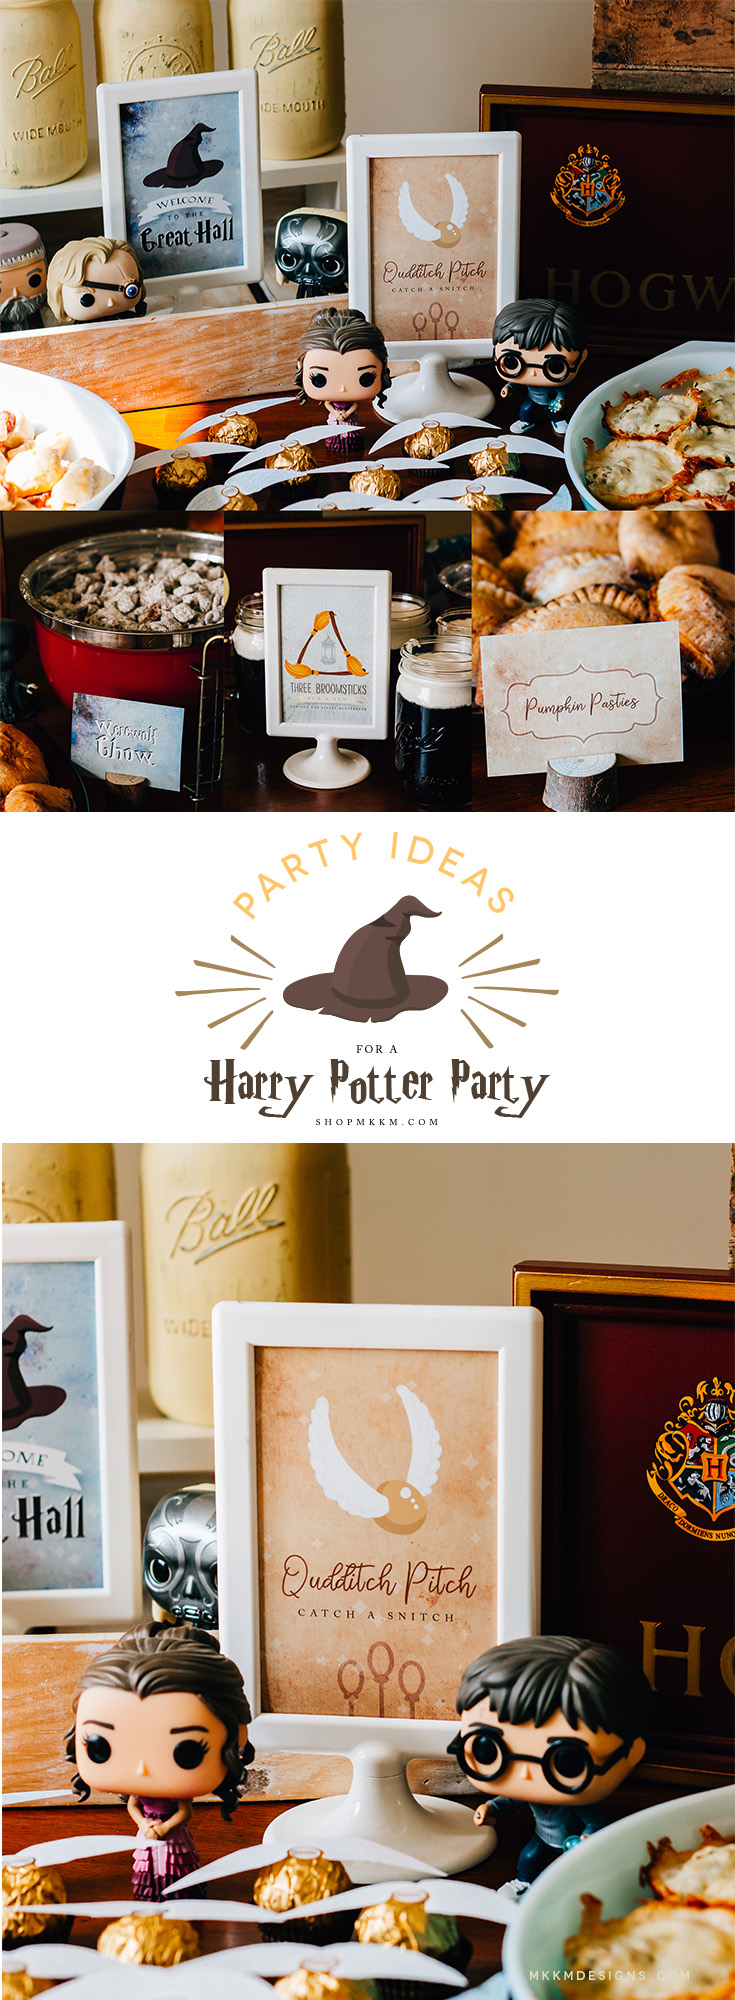 Harry Potter Mini Party: Free Printable signs and food cards from MKKM Designs.